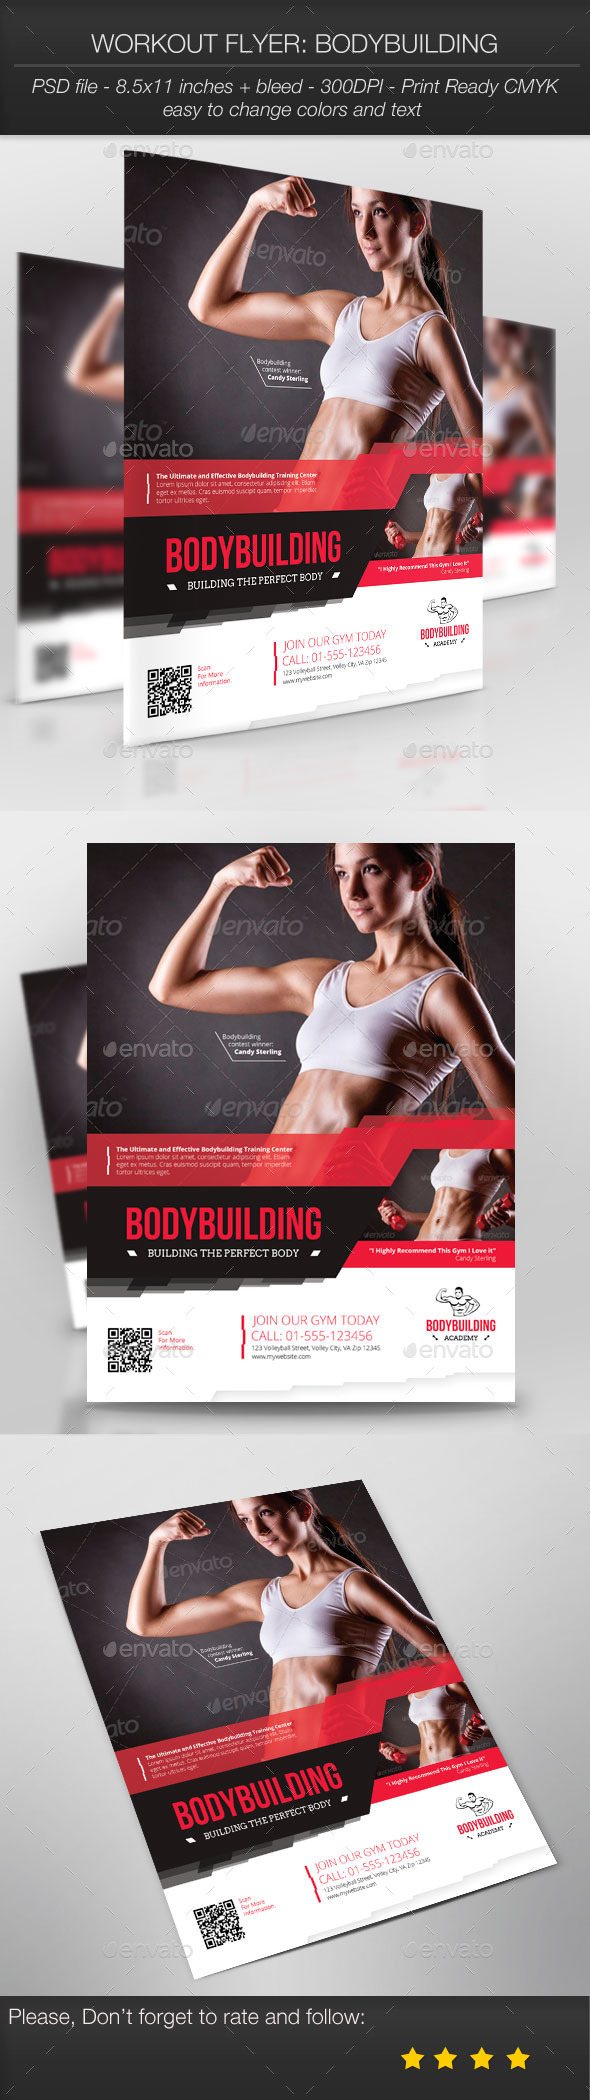 GraphicRiver Workout Flyer Bodybuilding 9676862